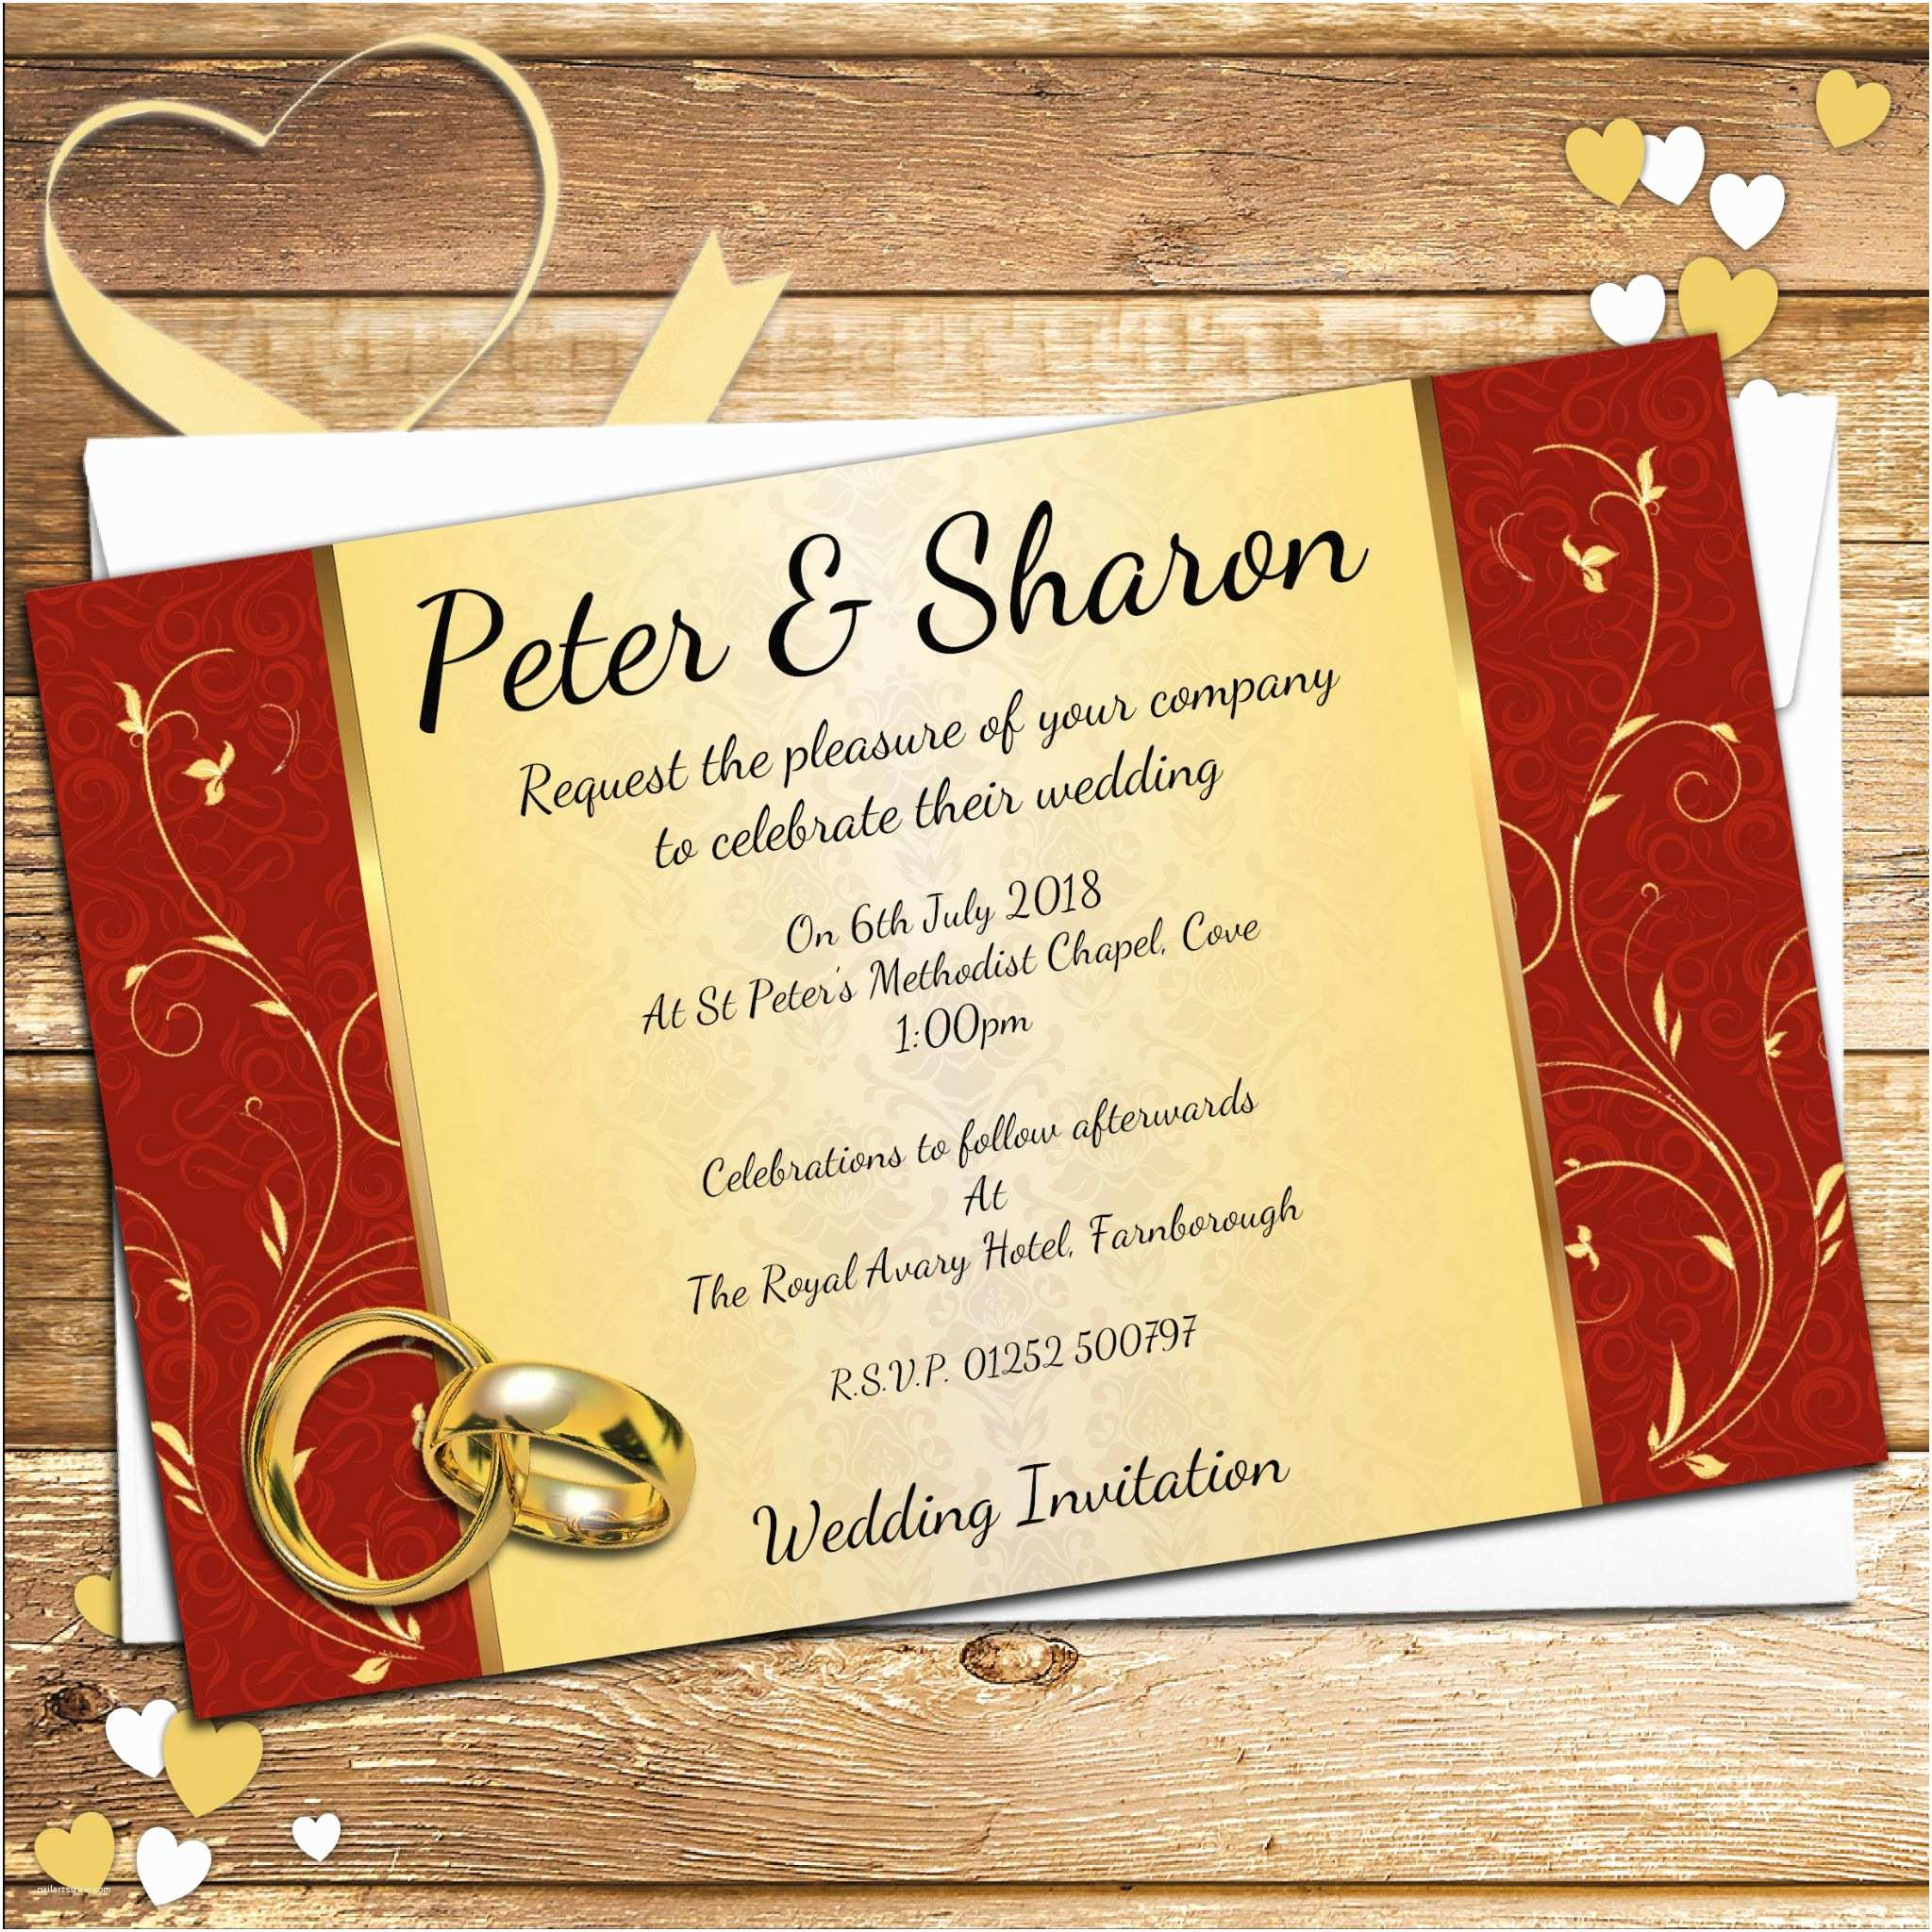 Red White and Gold Wedding Invitations 10 Personalised Elegant Red & Gold Swirl Wedding